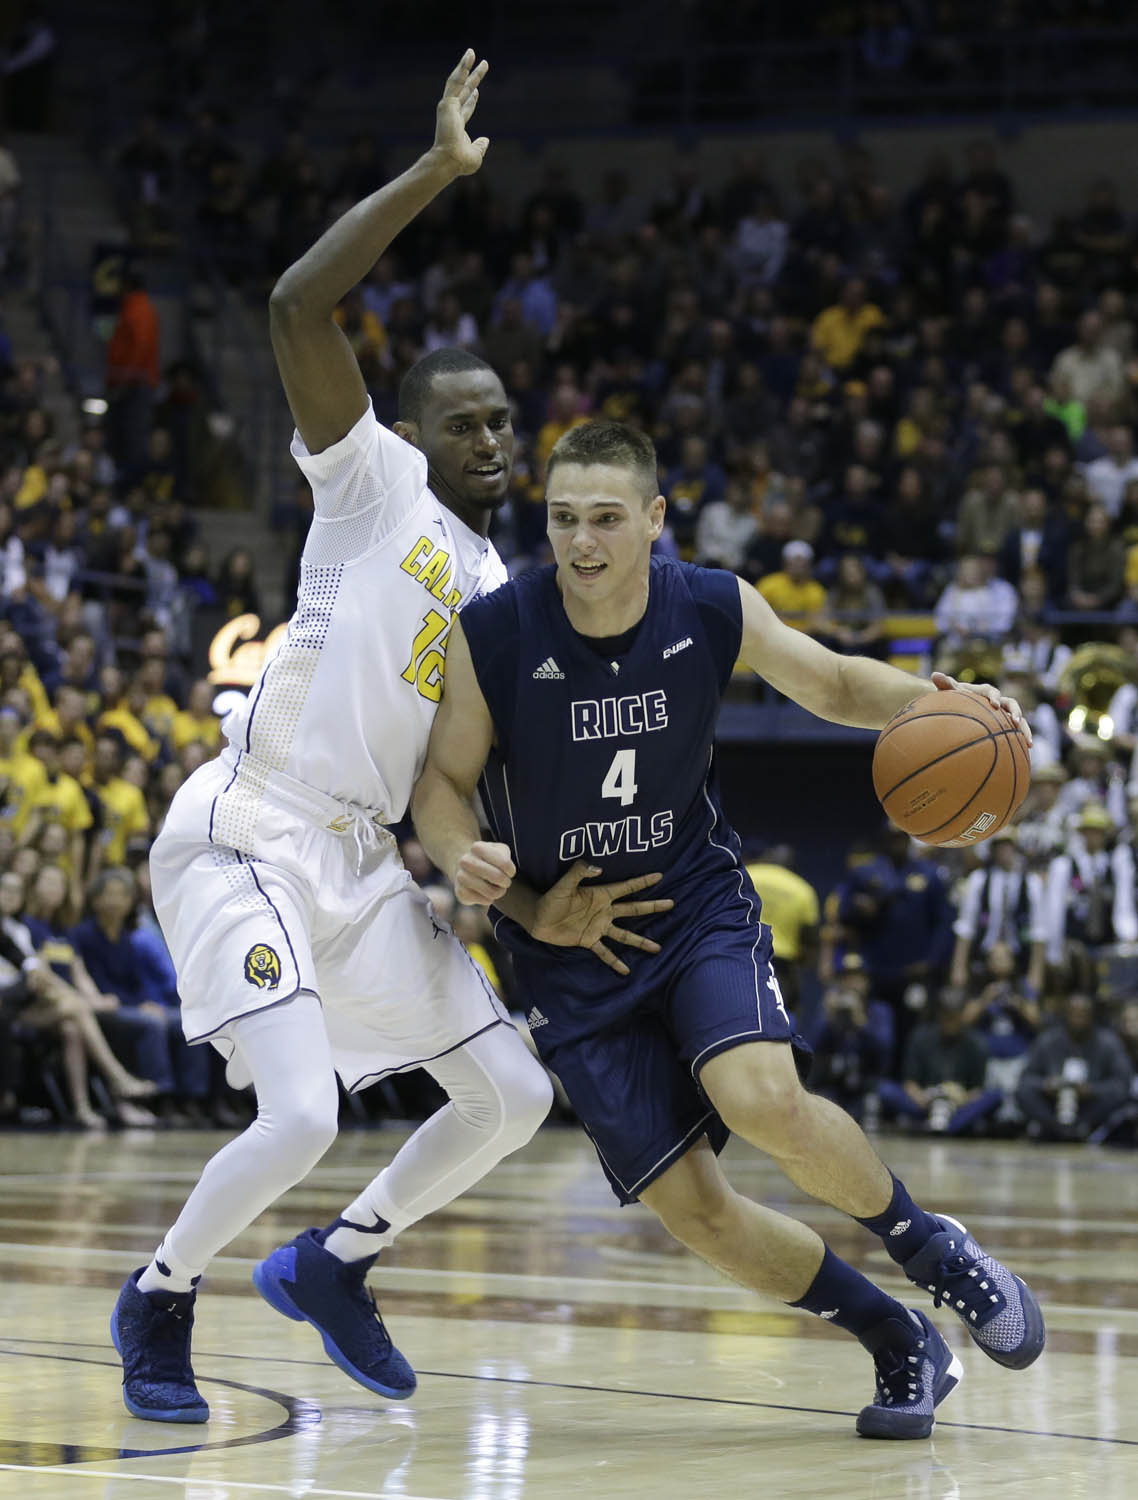 Rice's Egor Koulechov, right, drives the ball past California's Roger Moute a Bidias during the first half of an NCAA college basketball game Friday, Nov. 13, 2015, in Berkeley, Calif. (AP Photo/Ben Margot)